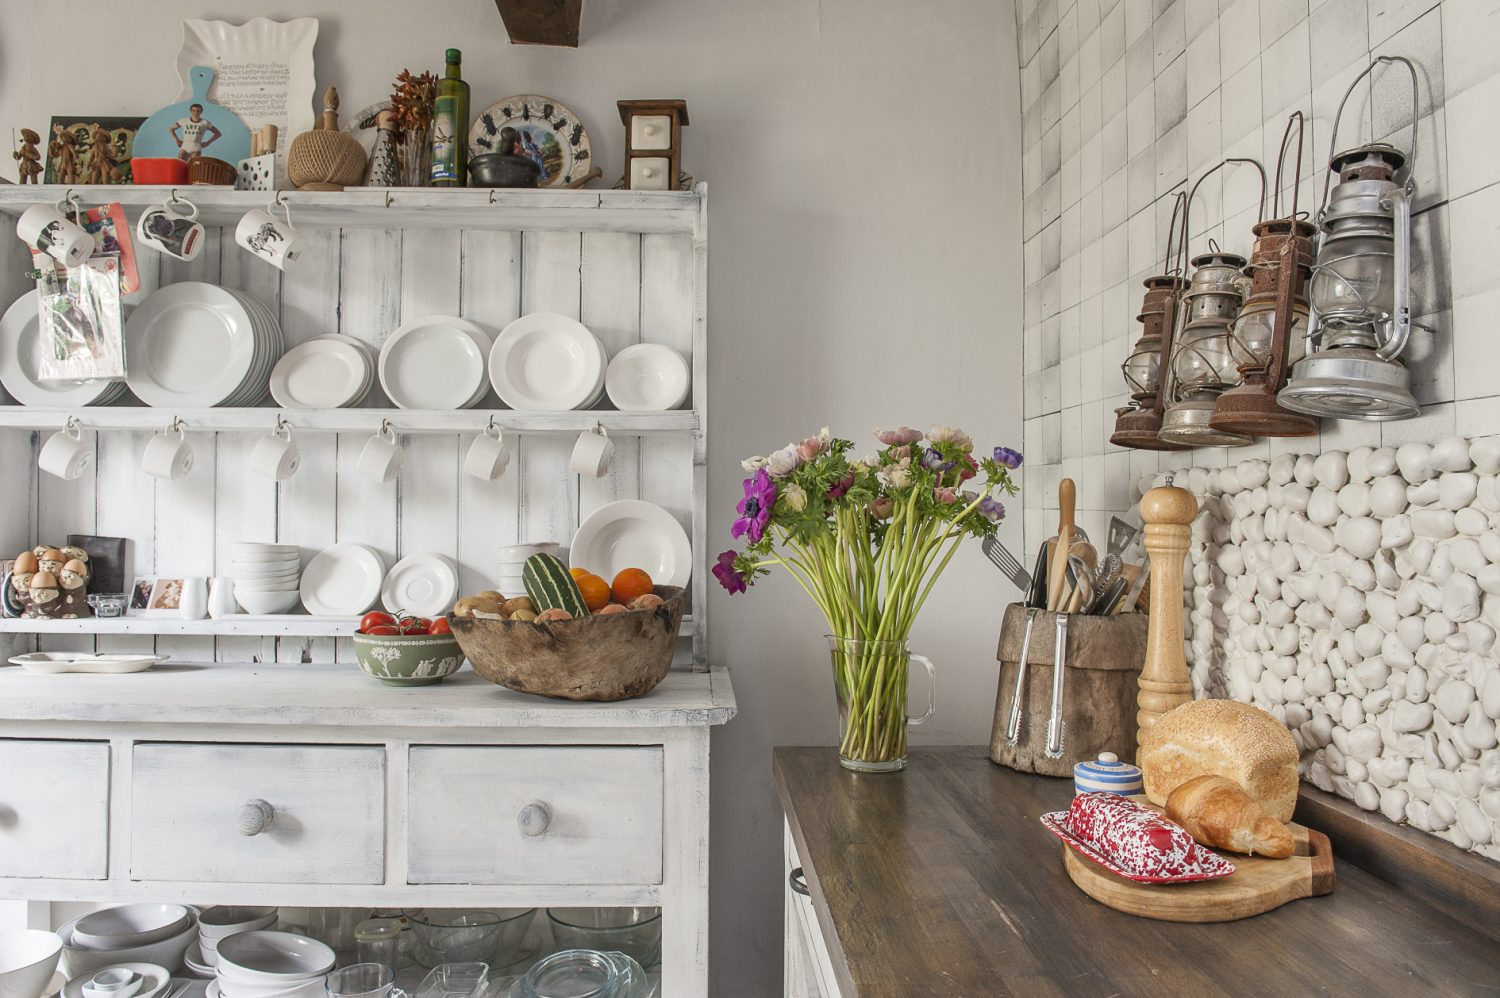 Painted pebbles make a textural splashback above the wooden worktop